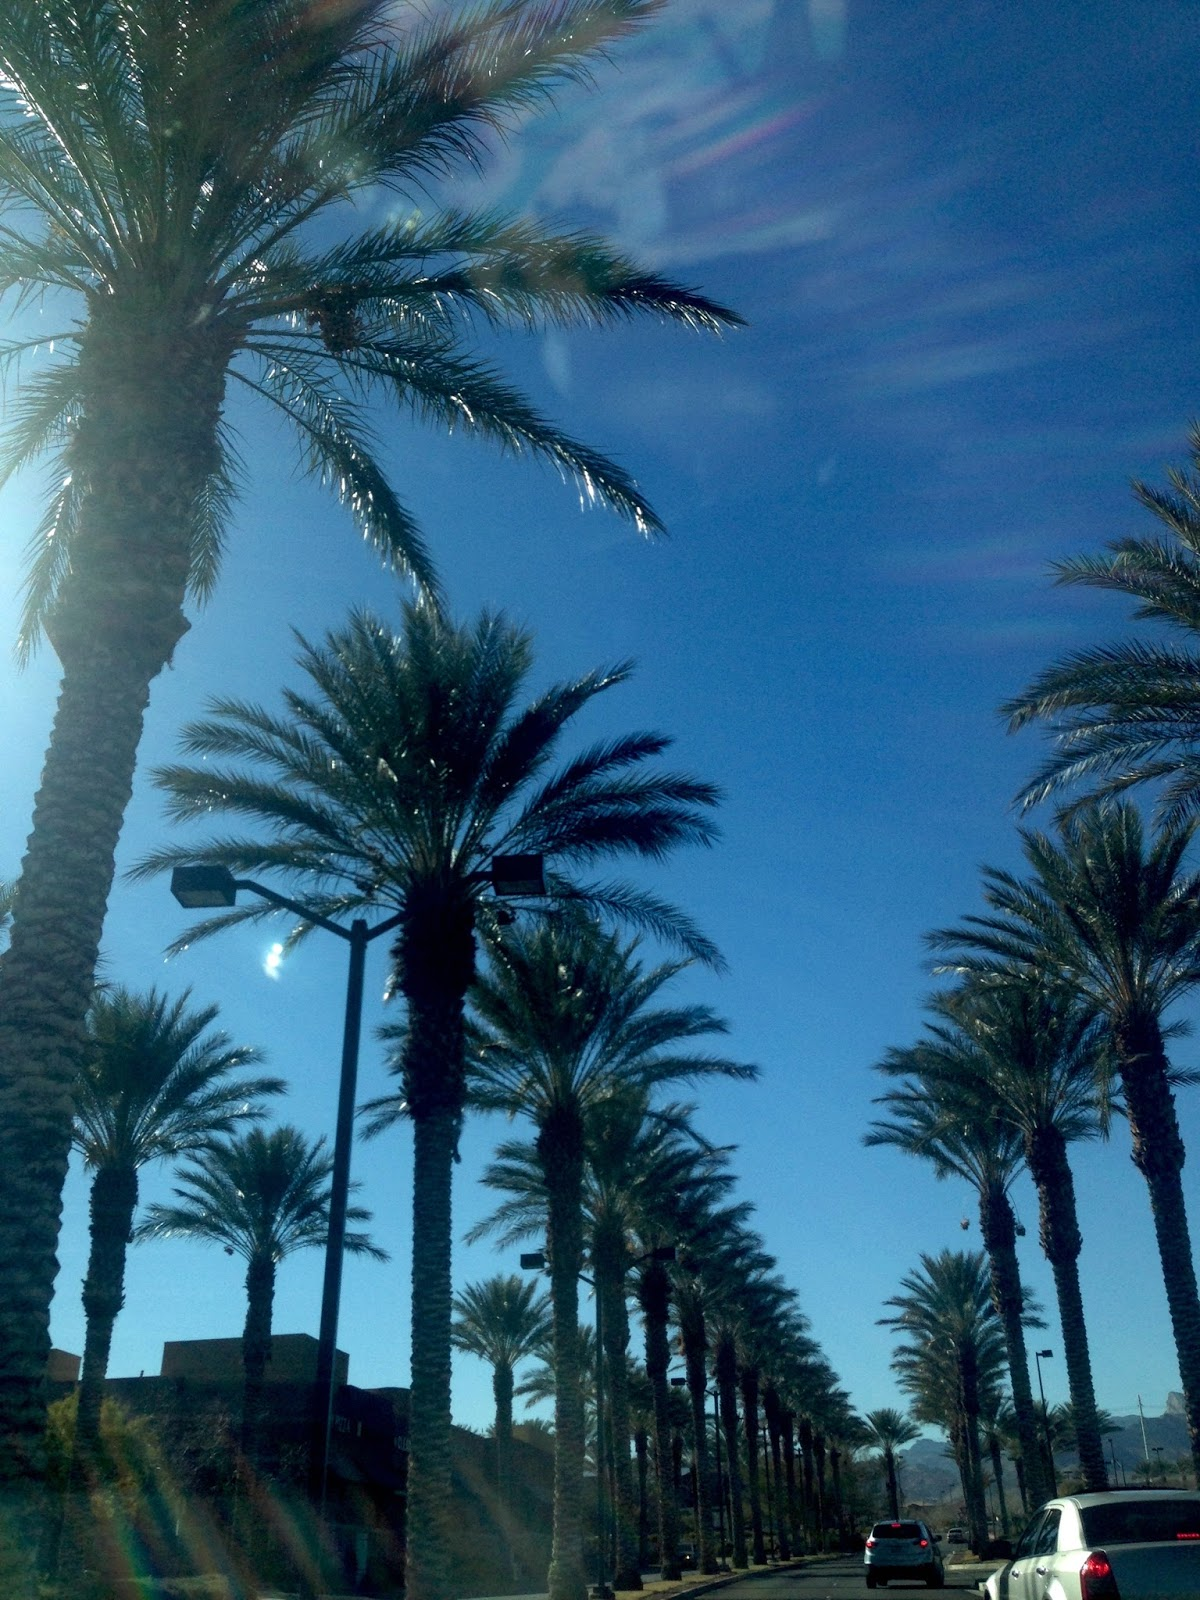 Las Vegas Summerlin Majestic Palm Trees in the desert